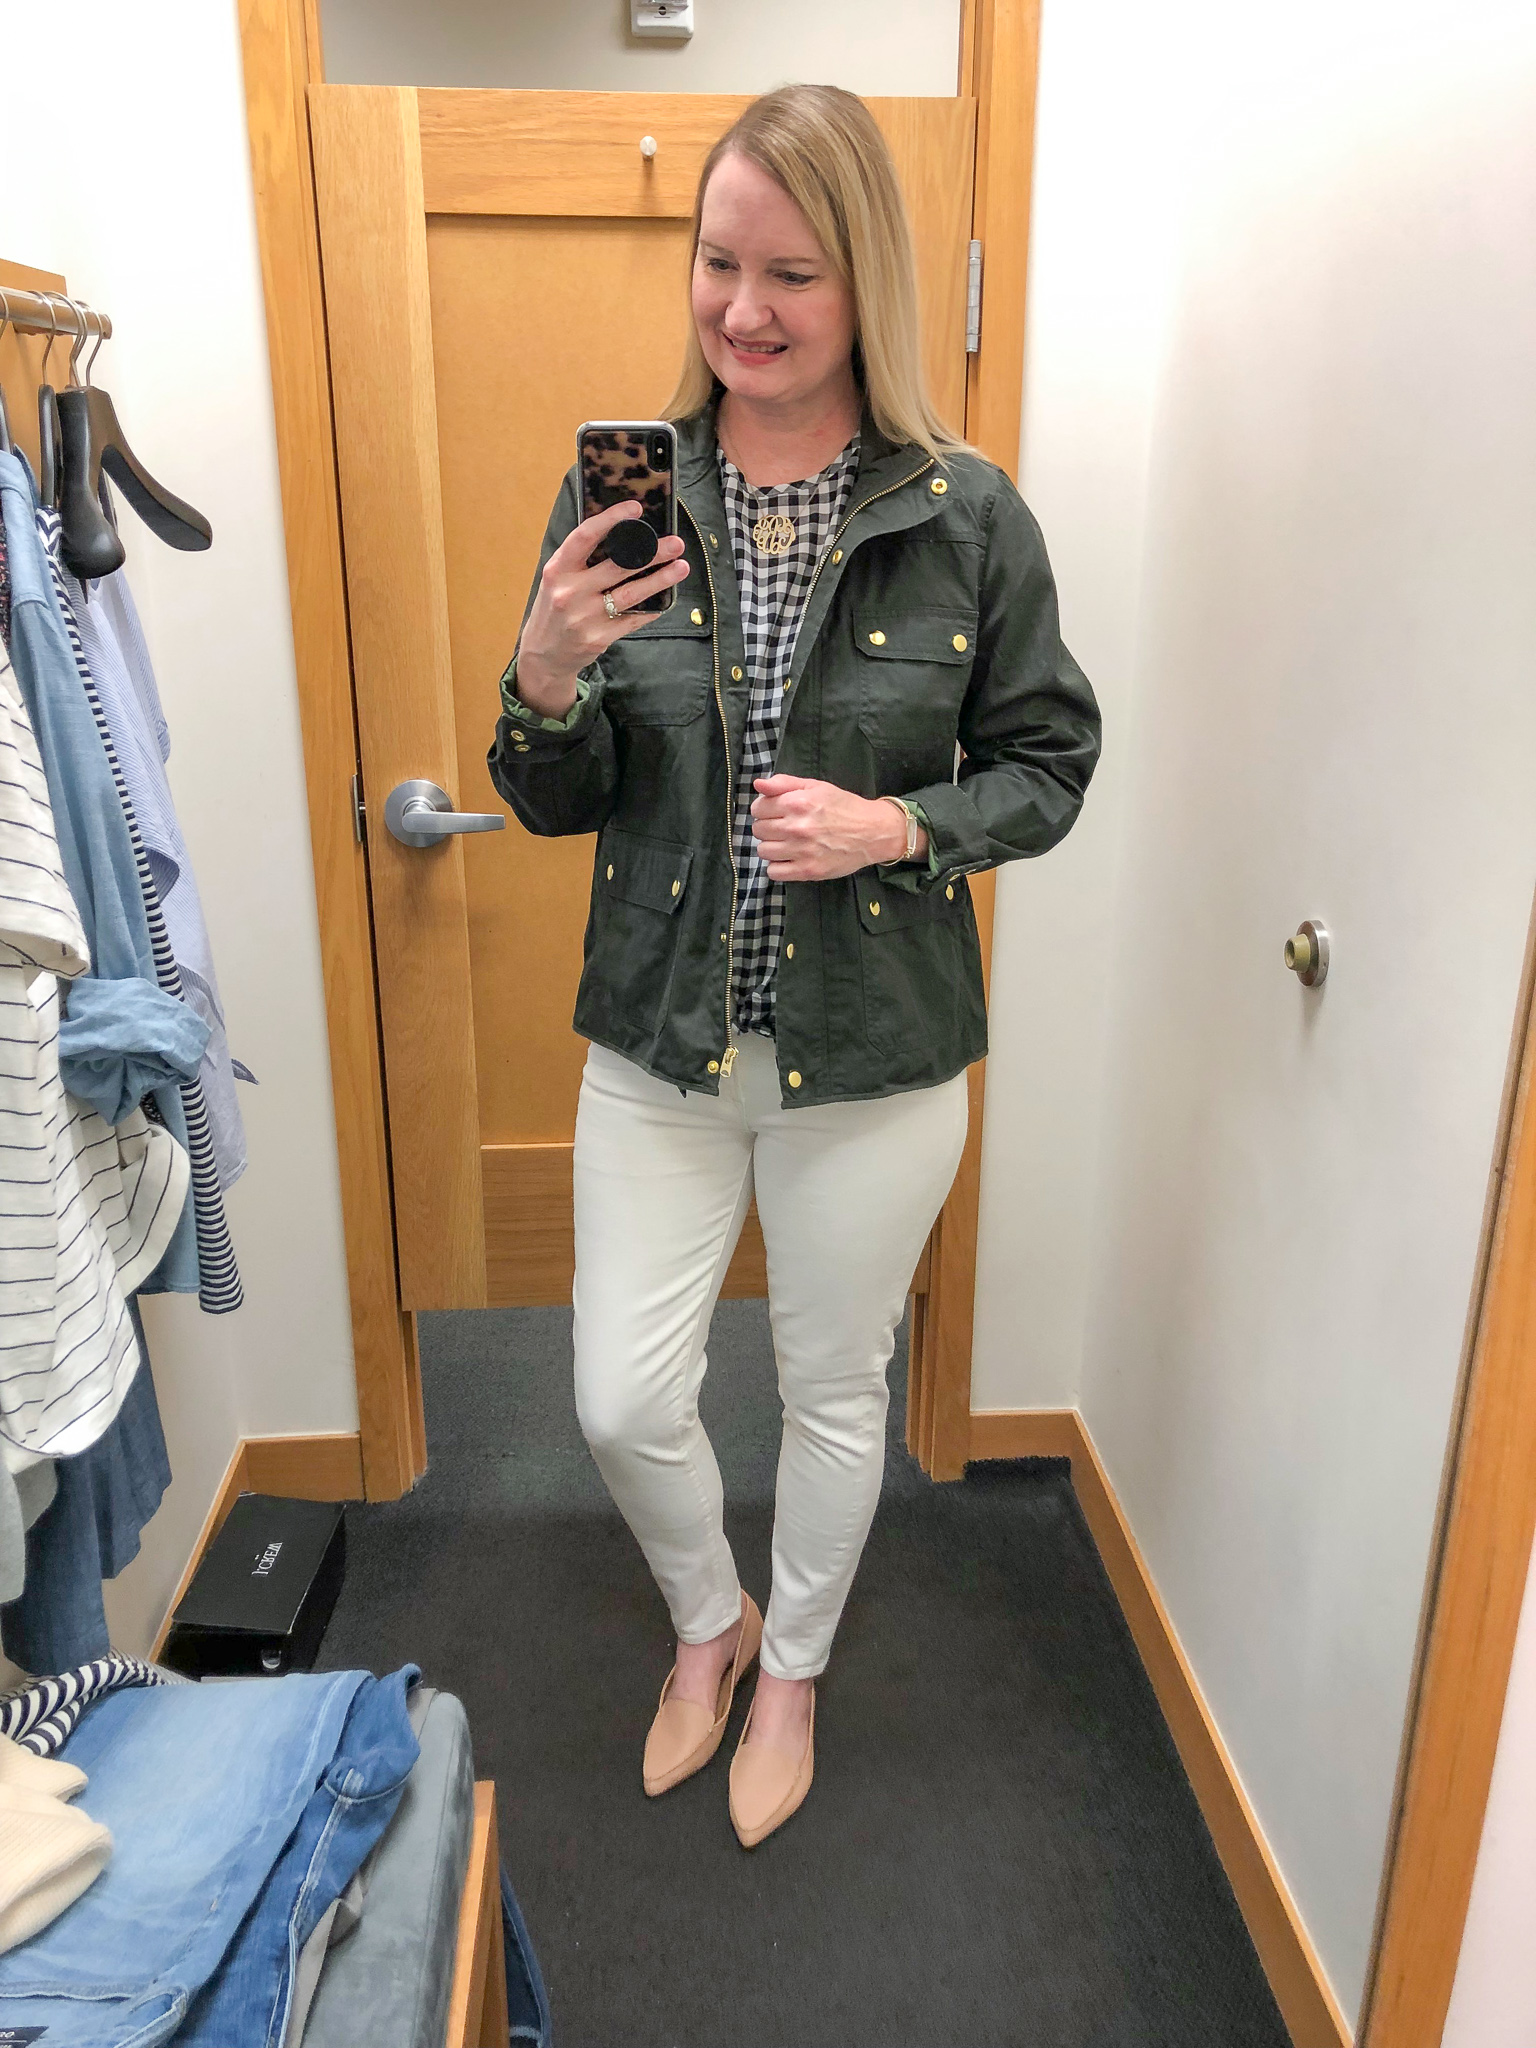 J Crew Factory Fitting Room Reviews March 2019 4